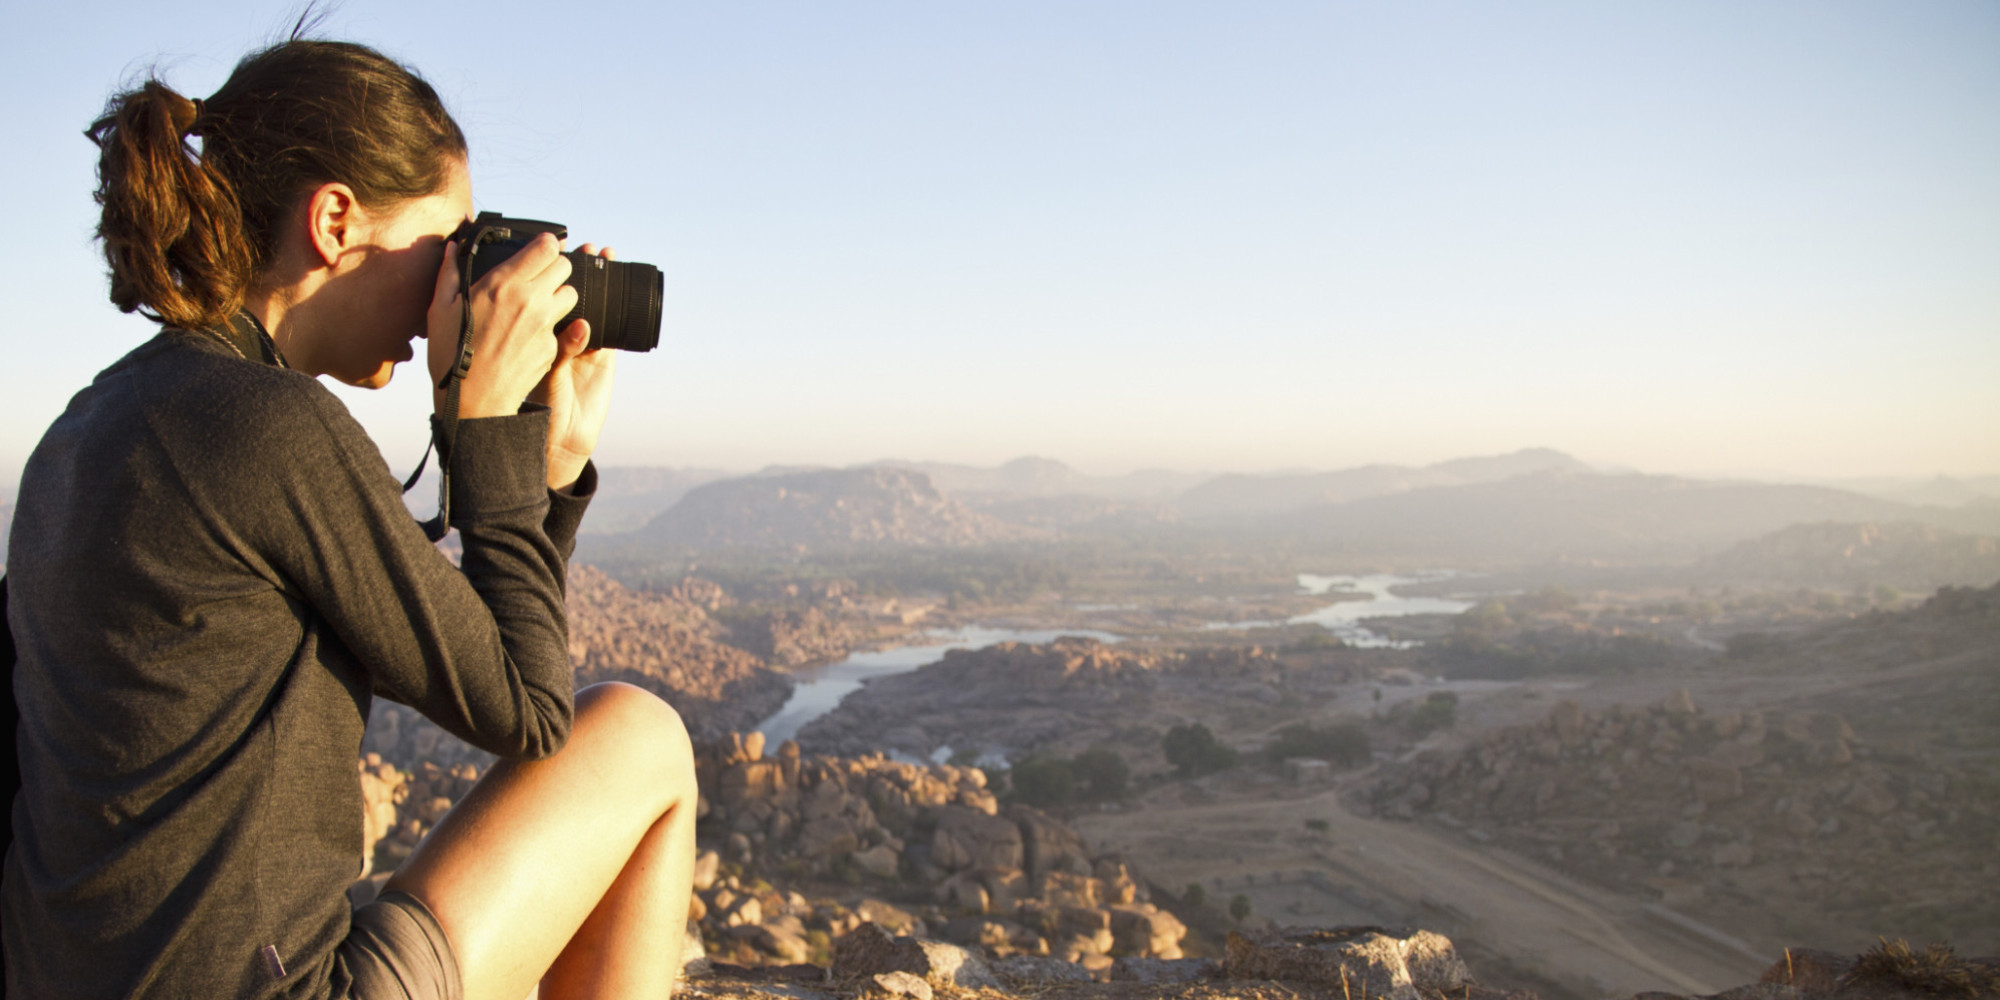 Solo Travel As A Woman Safety Tips And The Most Dangerous